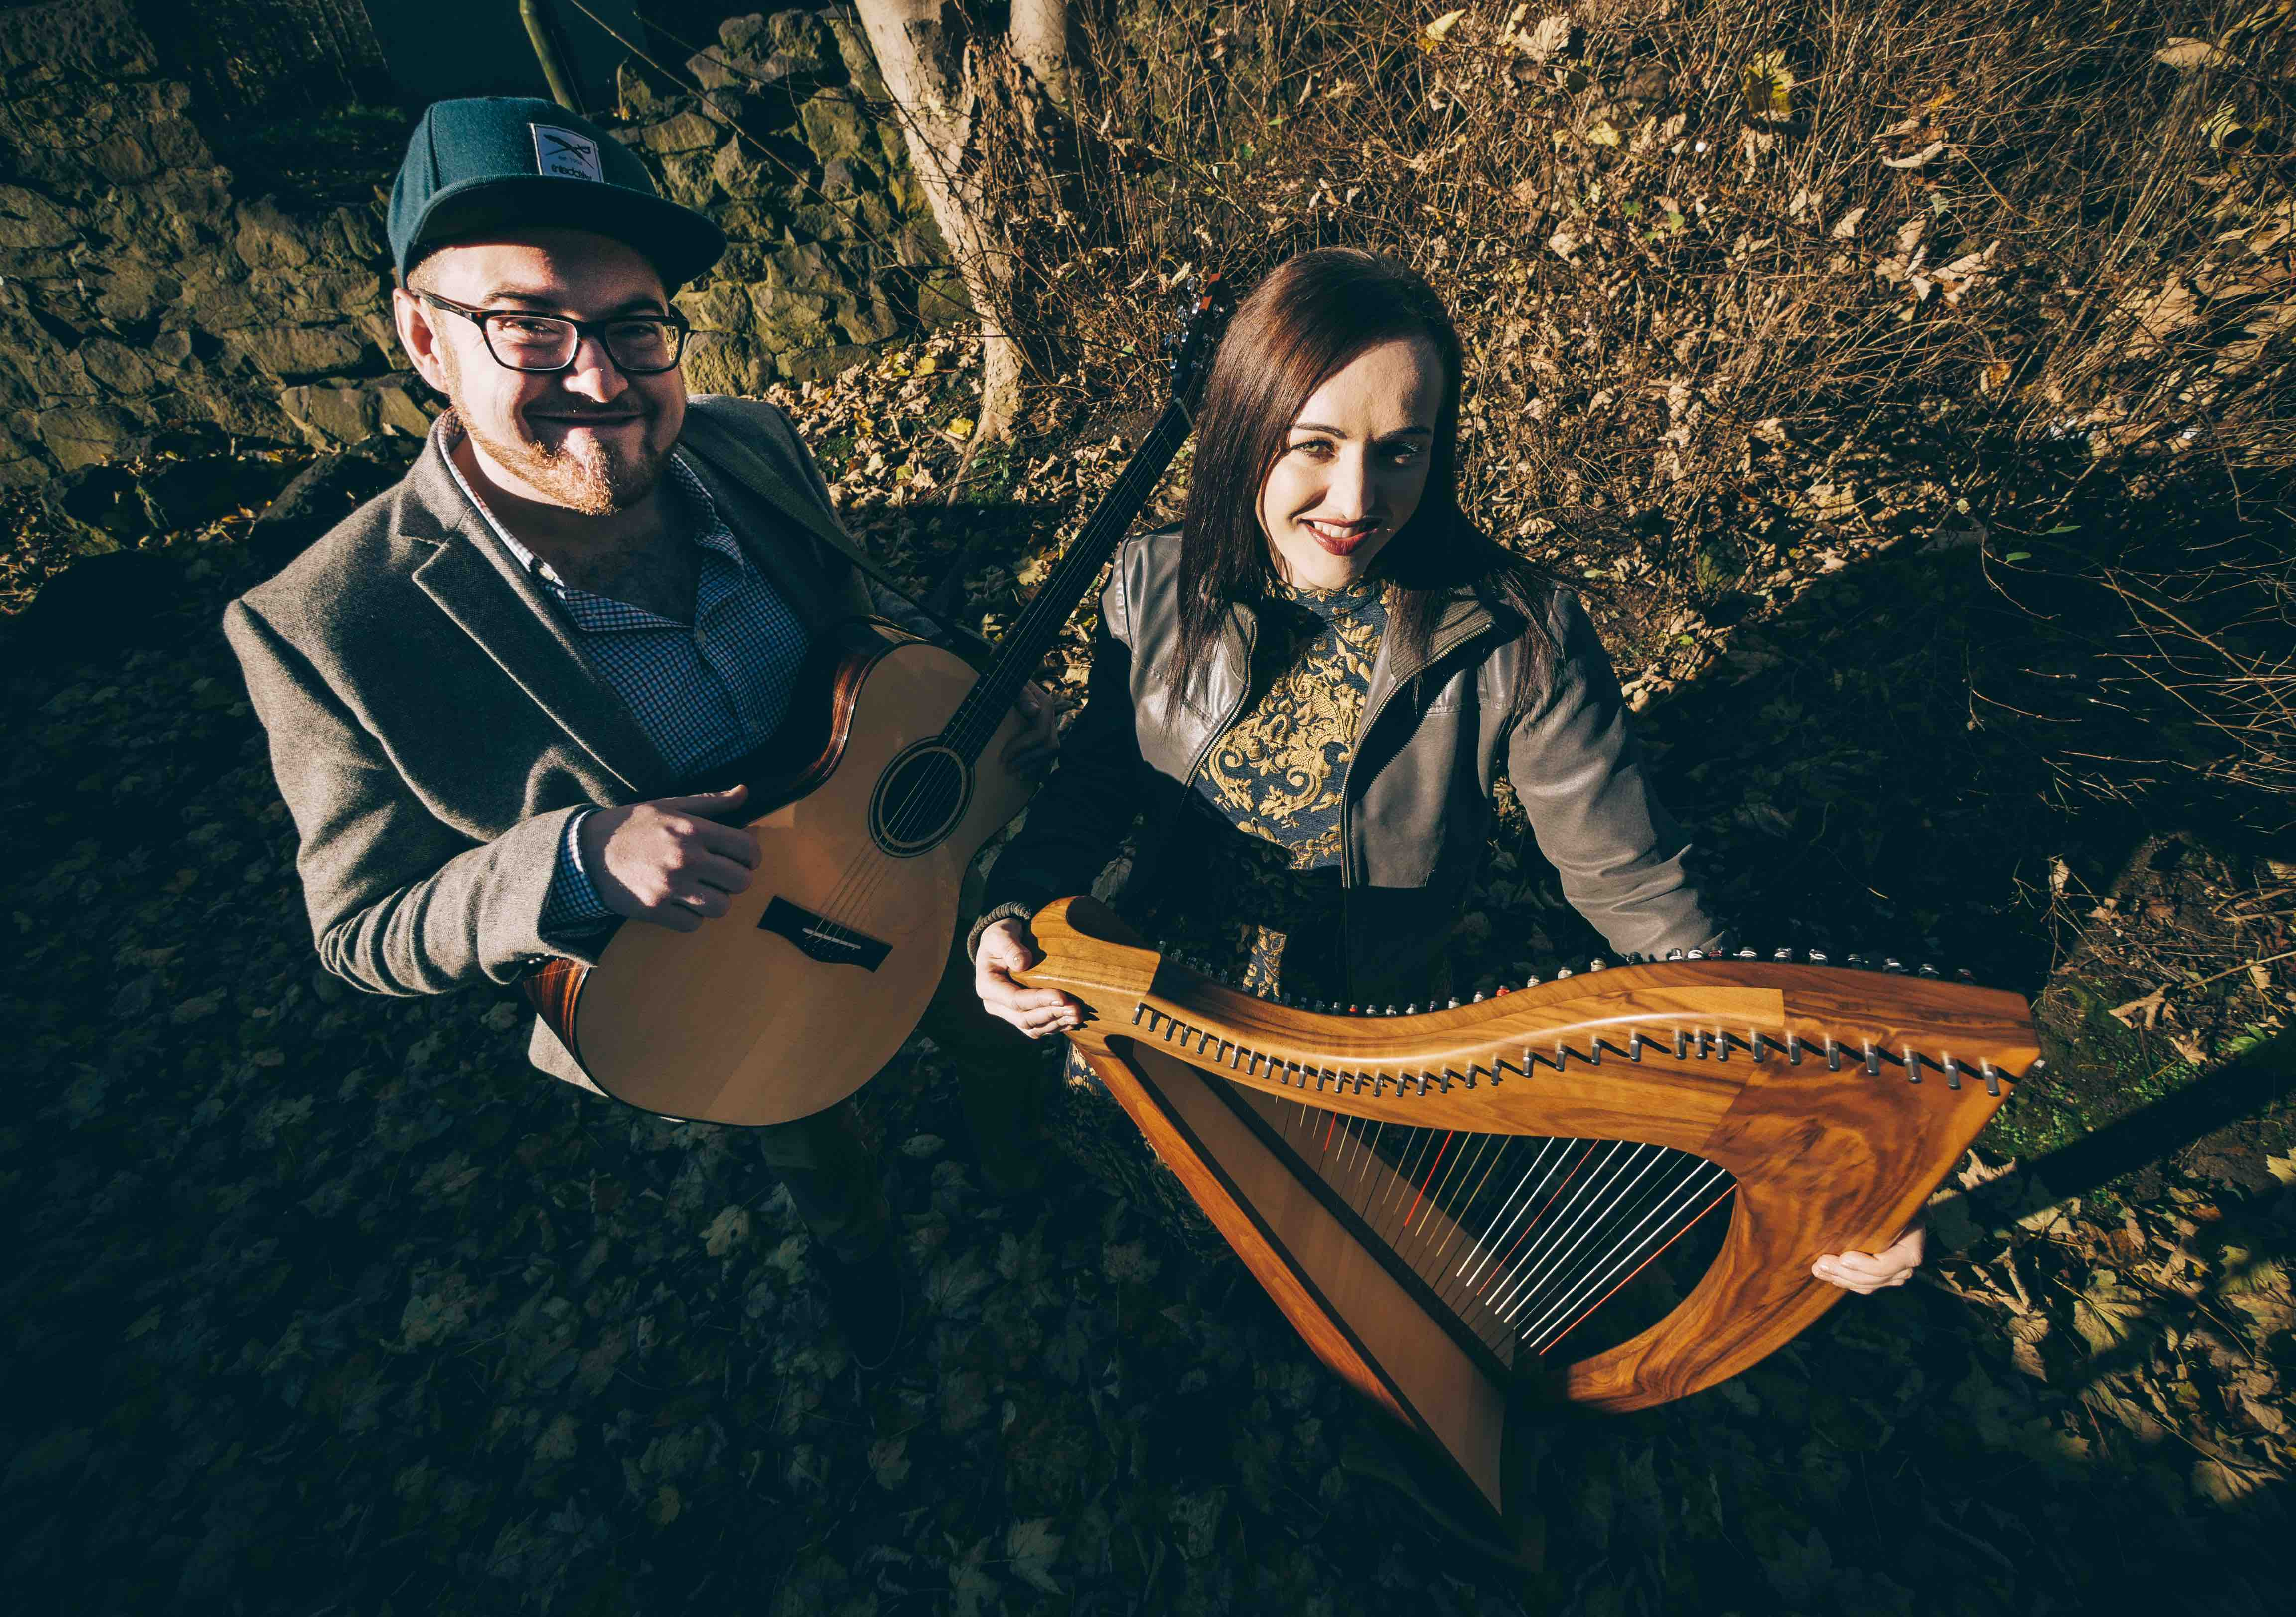 Scottish Harp and Guitar - Rachel Hair and Ron Jappy